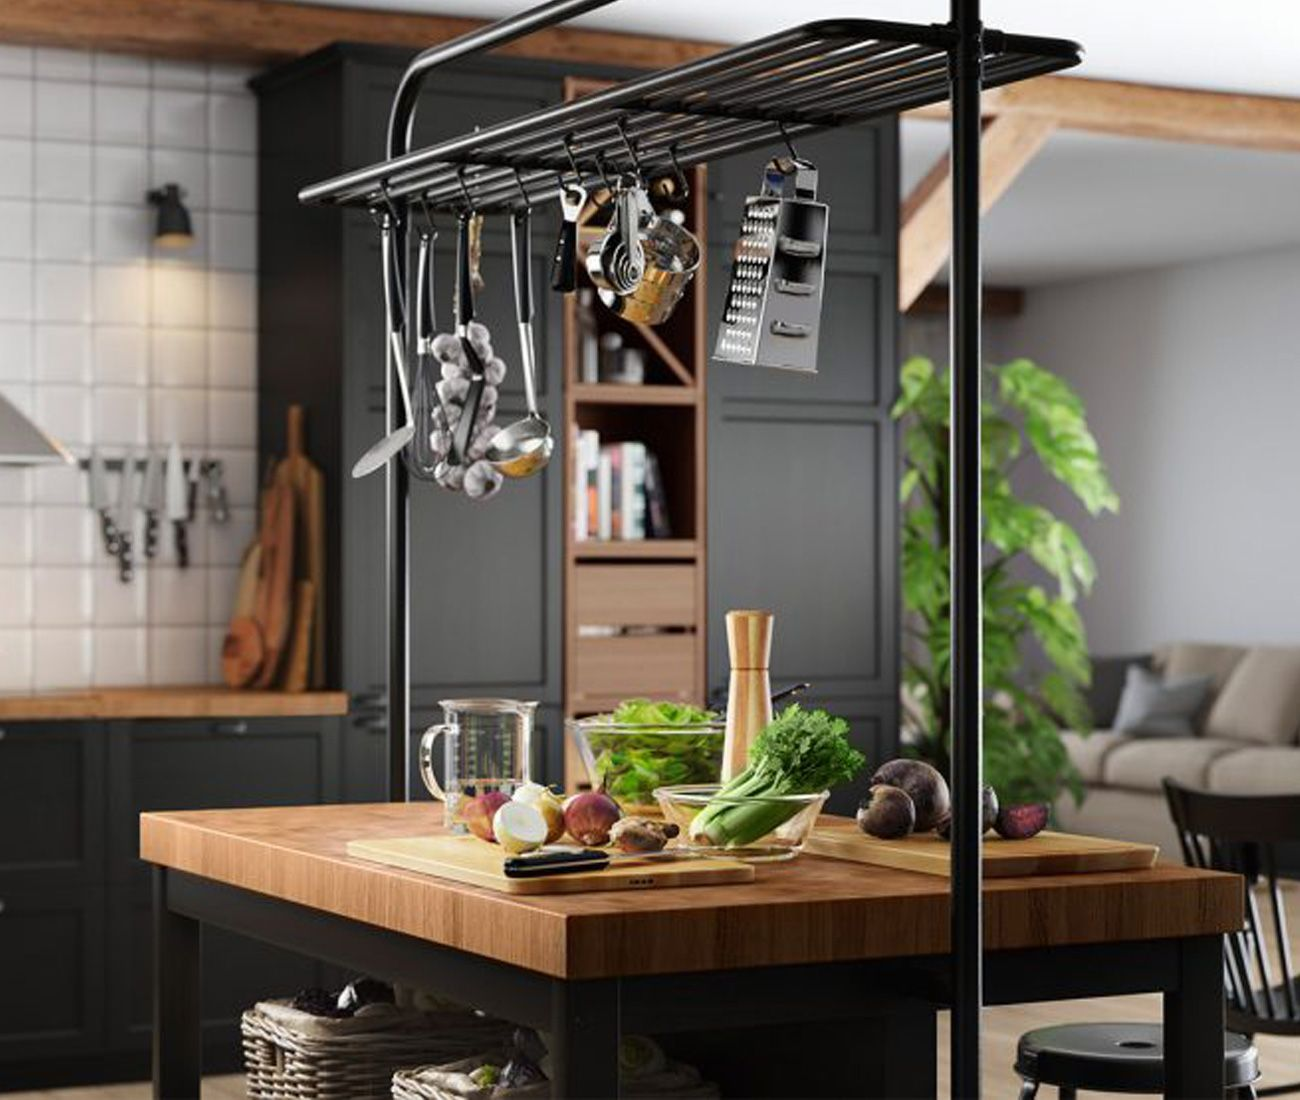 Industrial Kücheninsel Vadholma Kitchen Island By Ikea | Designlinesmag.com ...